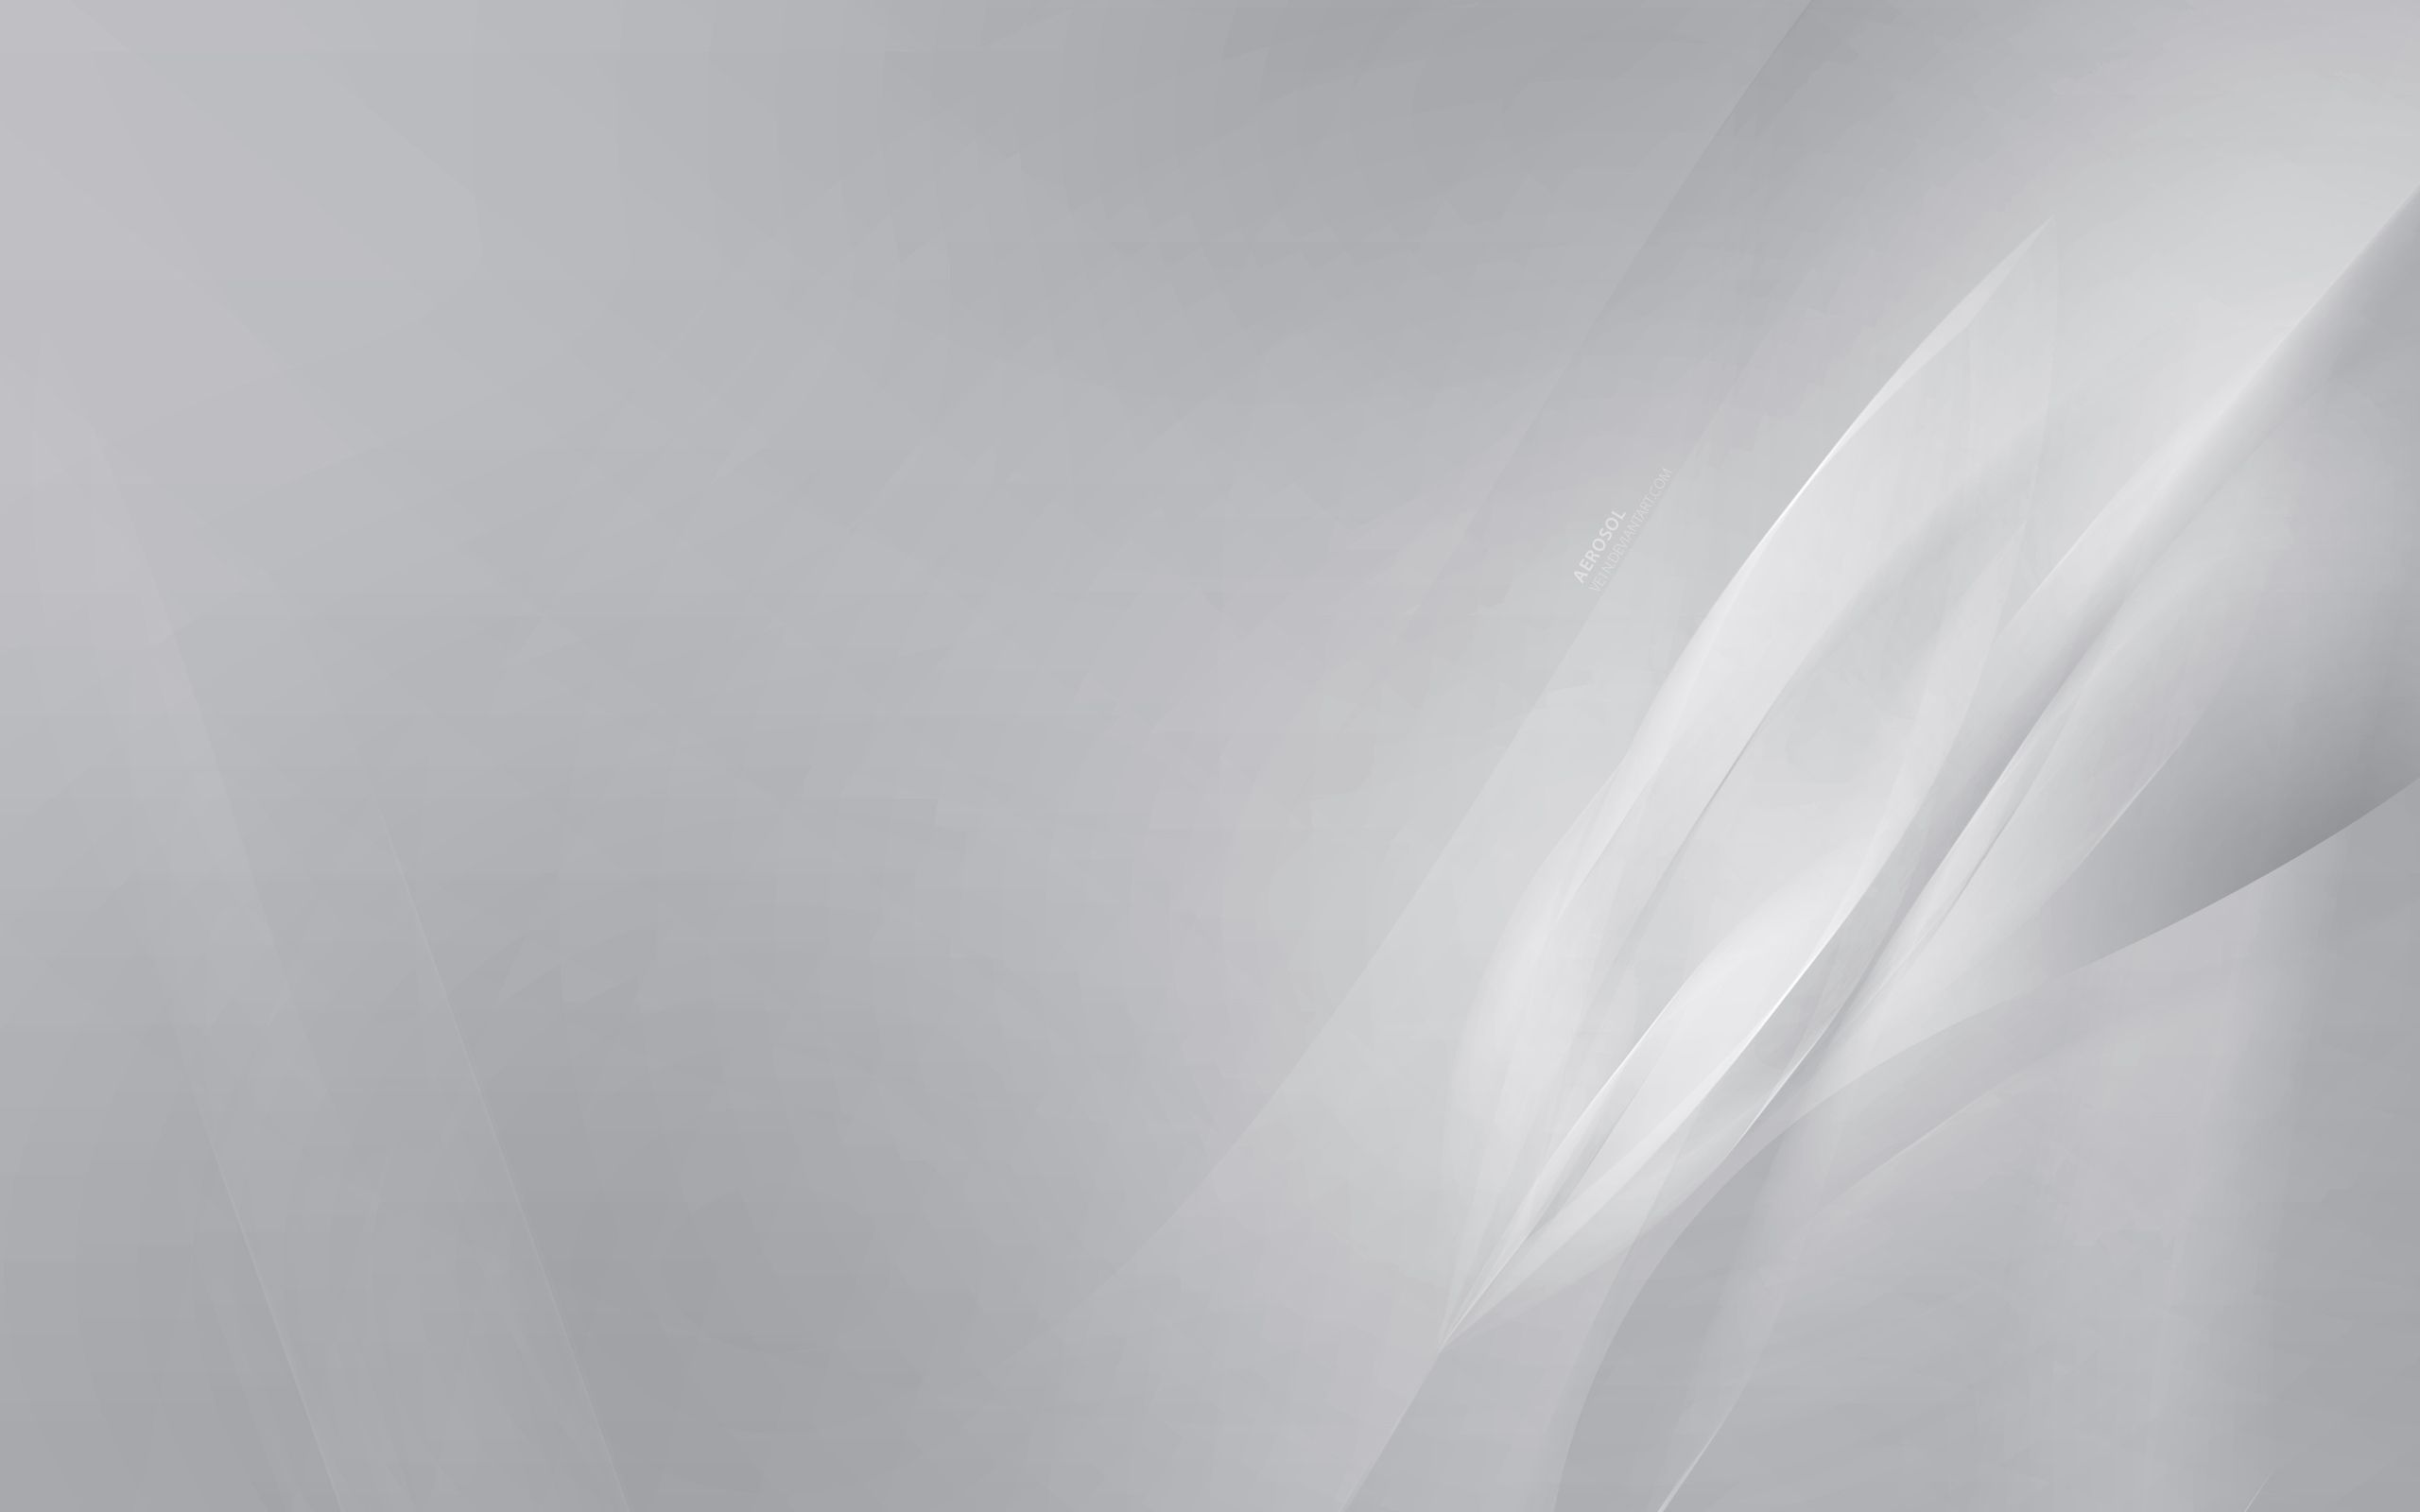 Minimalistic Colors Gray Background Minimalism Hd Wallpaper Picture